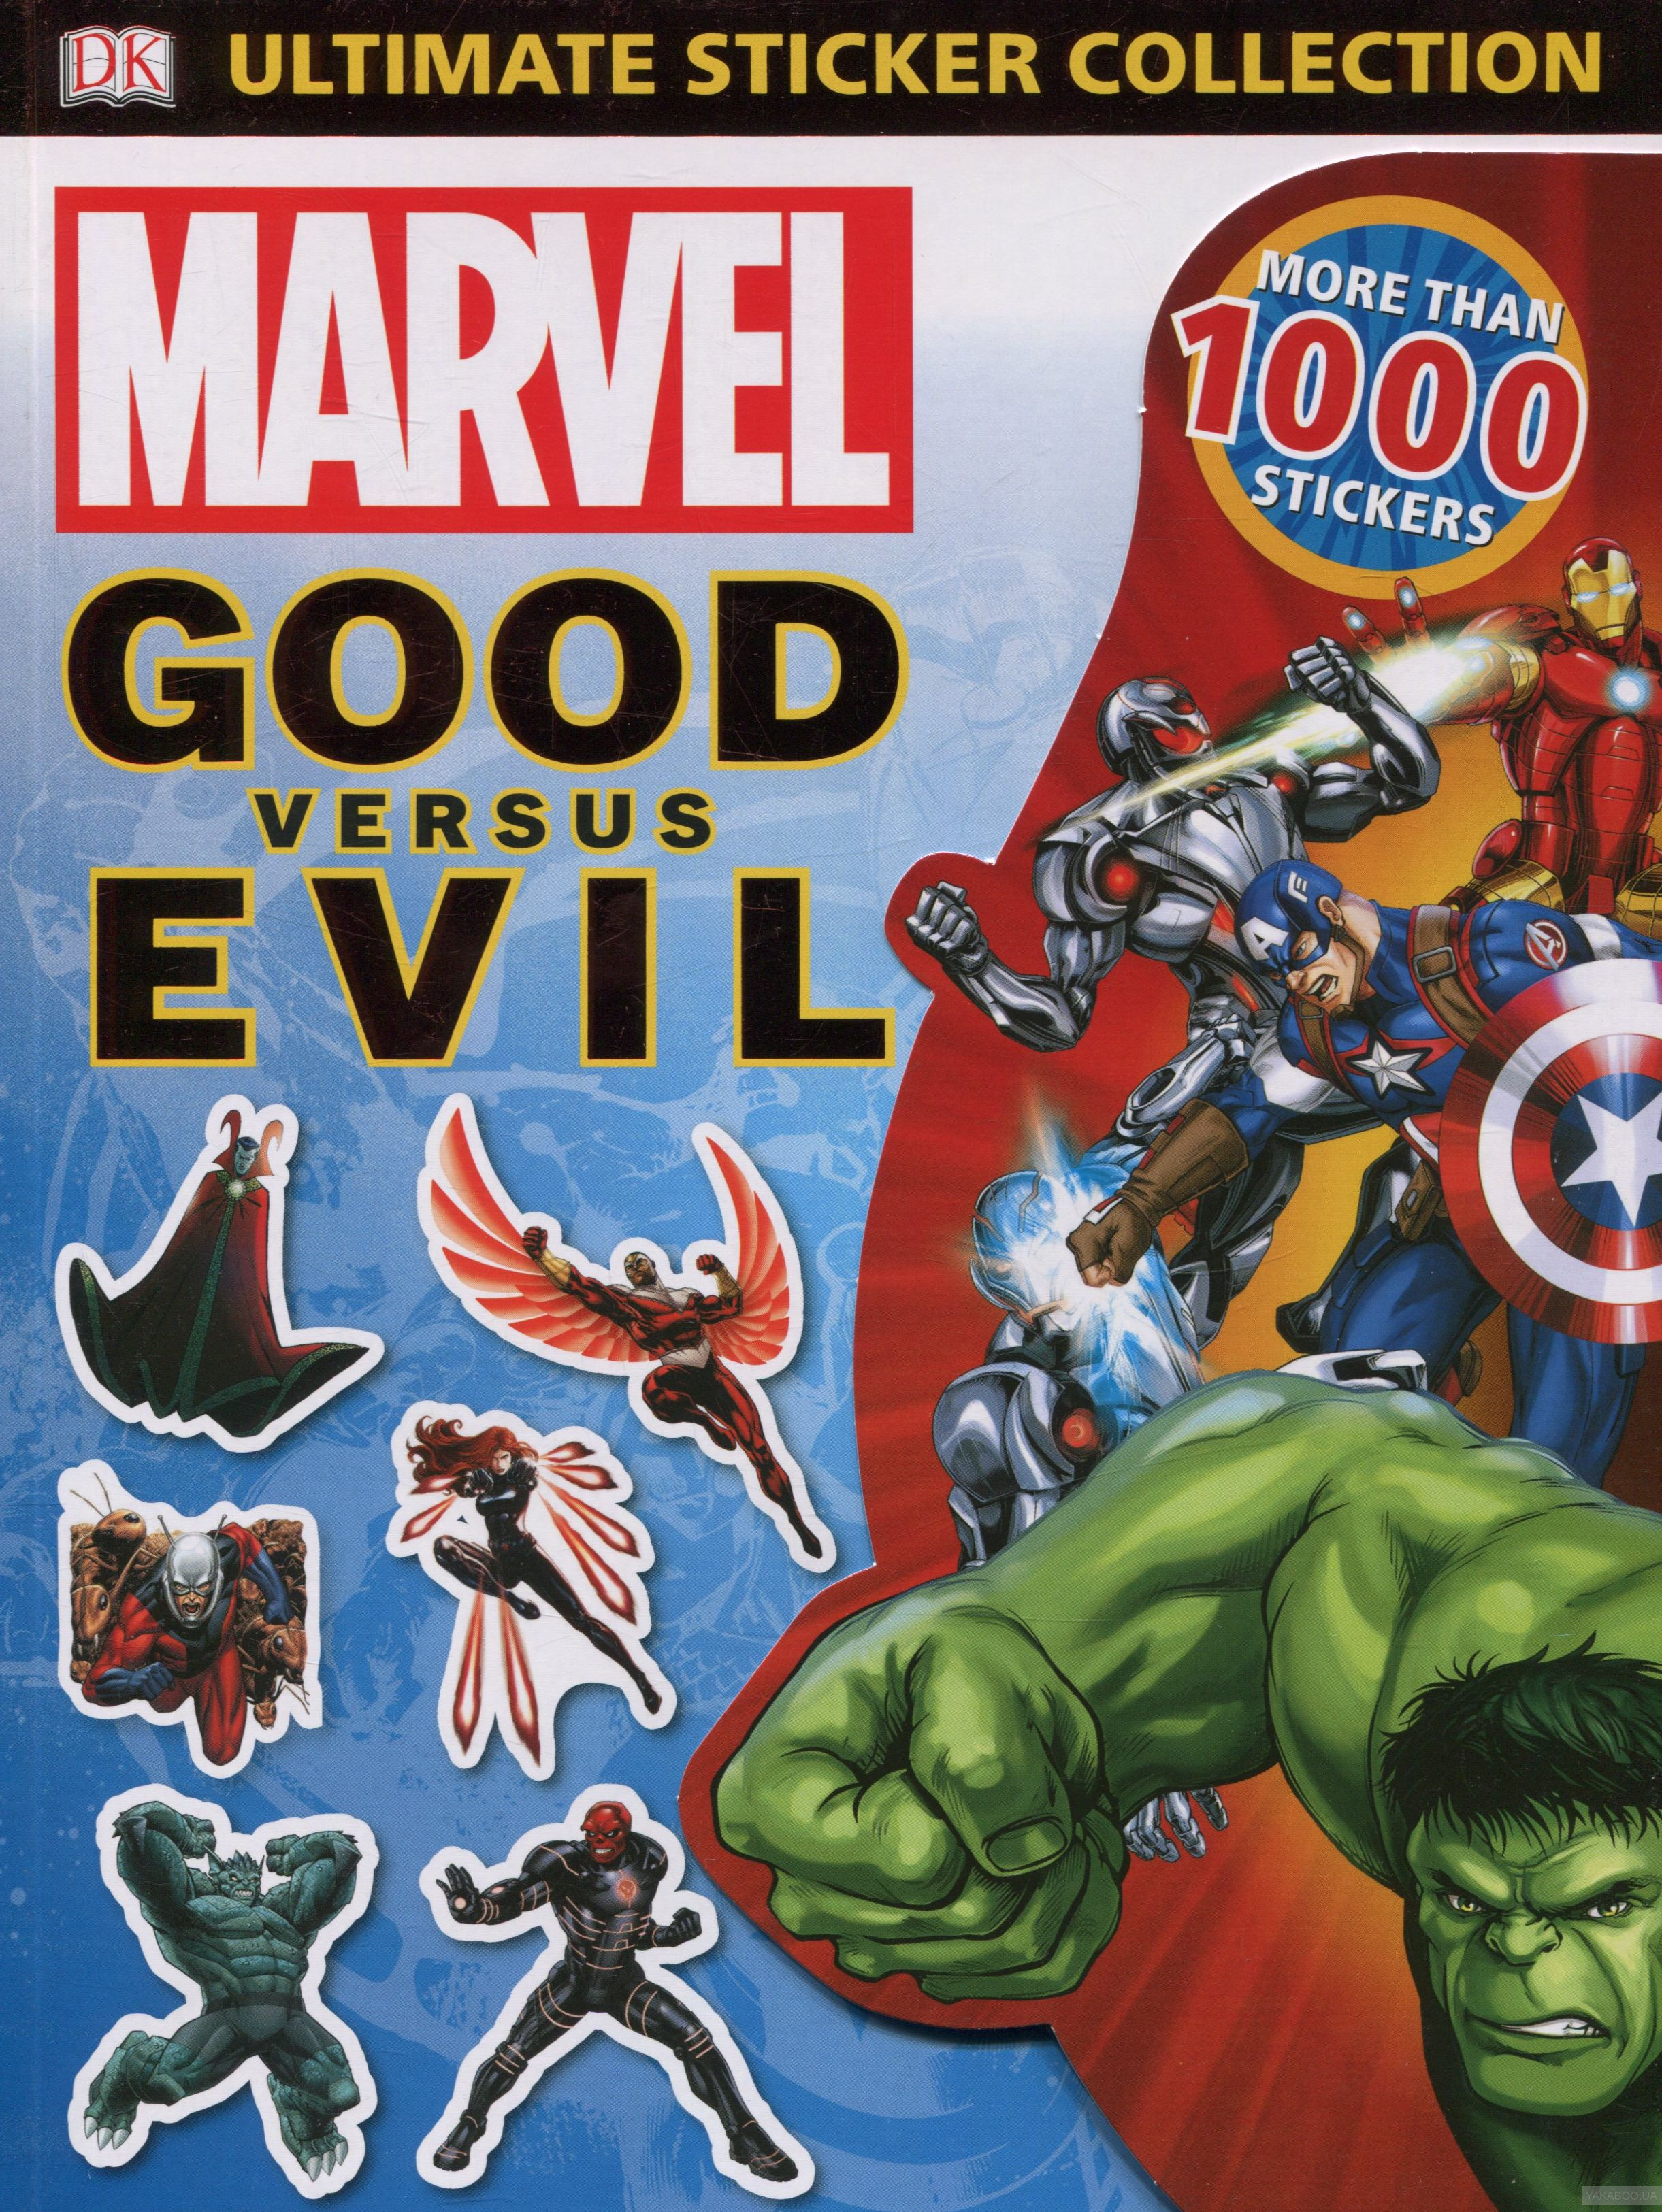 Marvel Good vs Evil Ultimate Sticker Collection фото